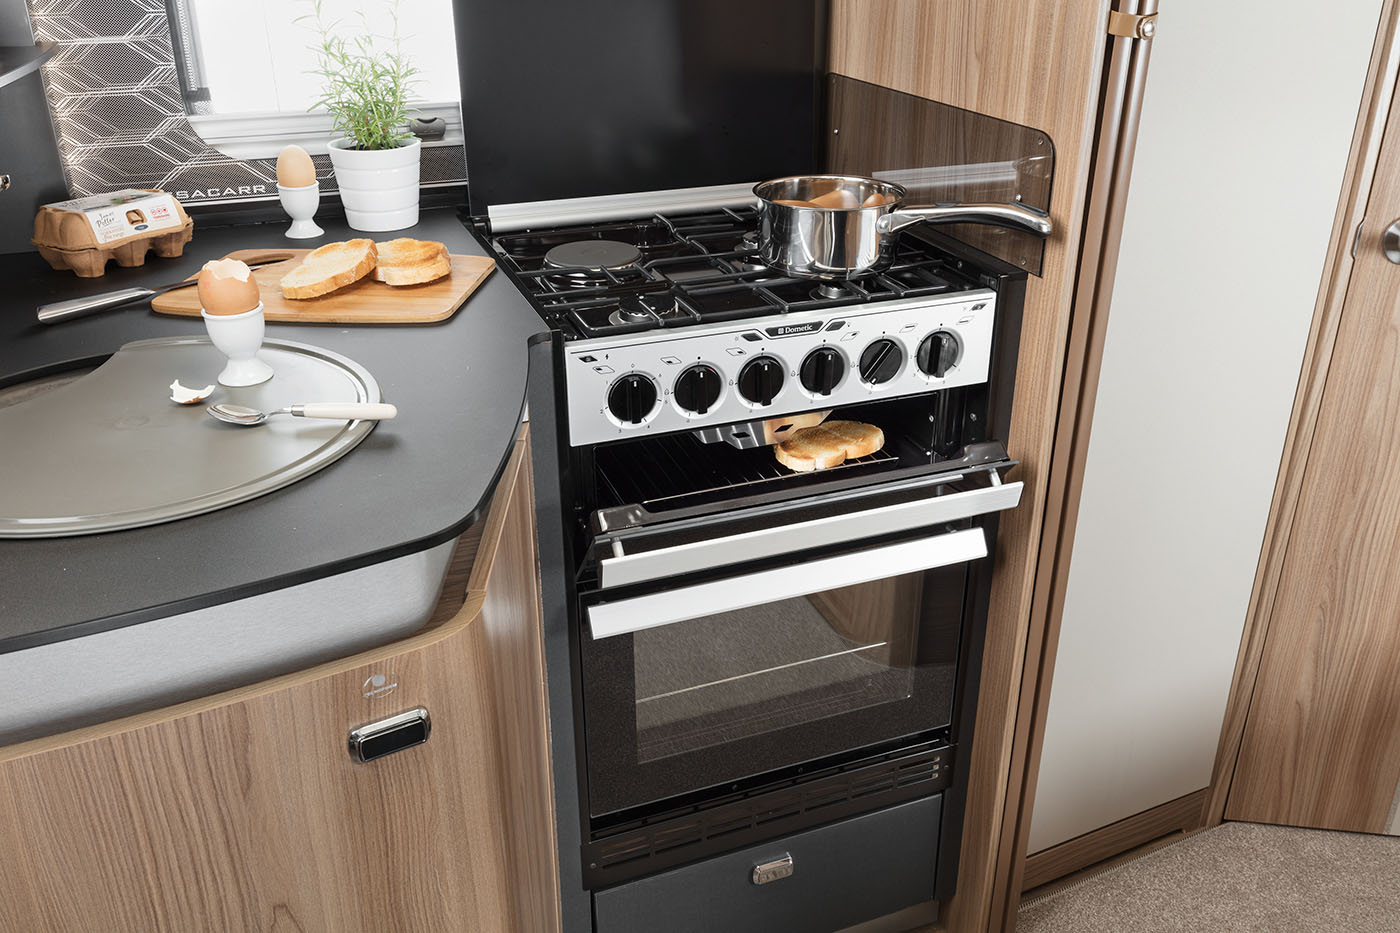 [INT]-Bessacarr-560-Oven-and-Hob-[SWIFT]